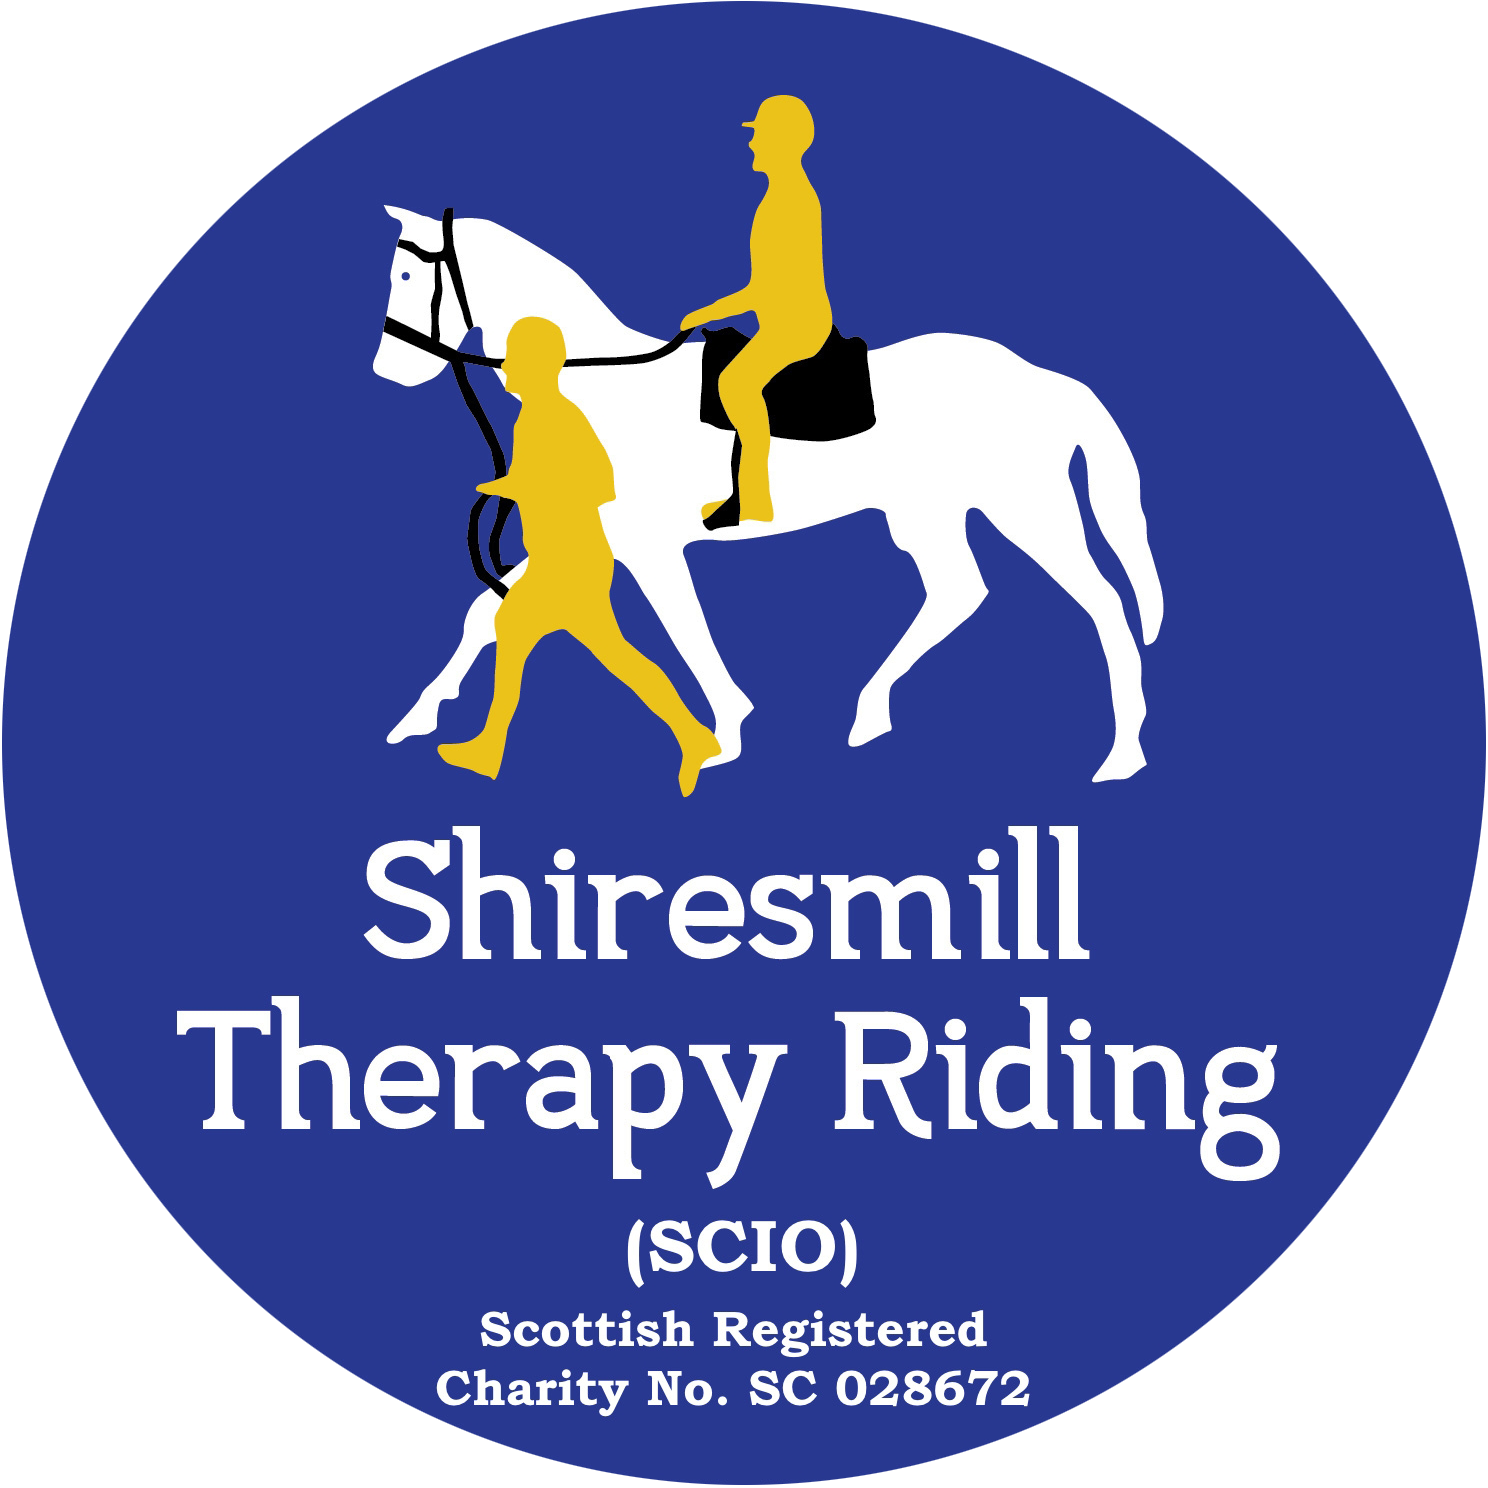 Shiresmill - Shiresmill Therapy Riding Centre in Fife, Scotland